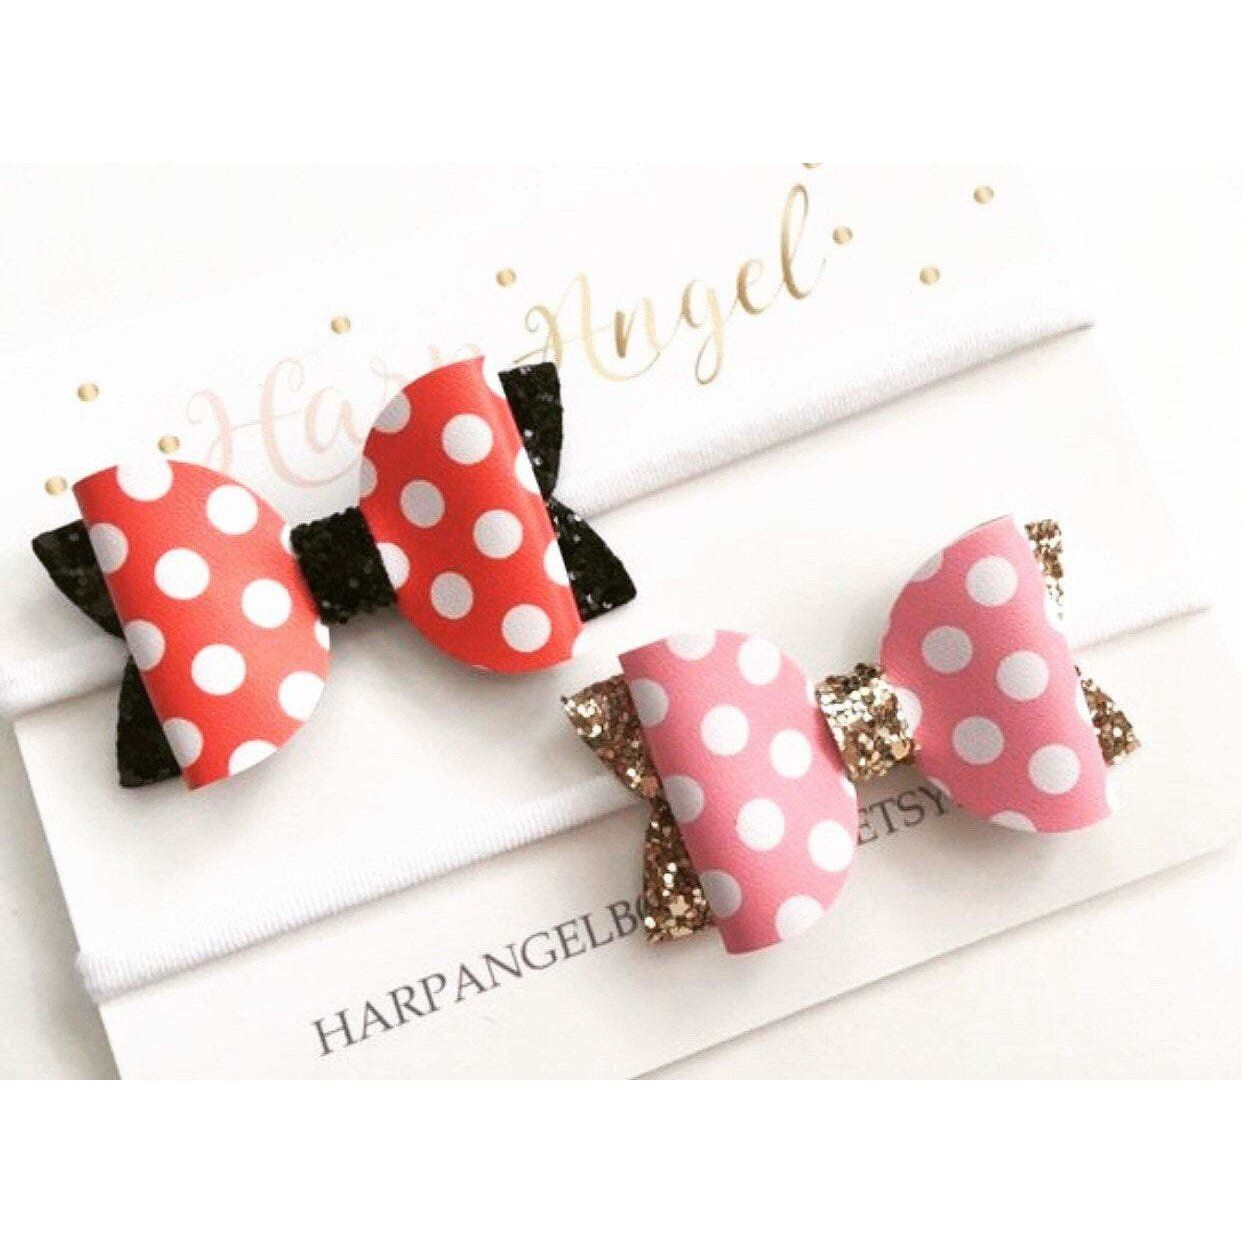 Red & White polka dot with black glitter or pink & white with gold glitter Minnie Mouse bow that is made with faux leather fabric.It can be attached to a black, nude, ivory or white nylon one size headband or a partially lined alligator clip. Nylon is super soft and doesn't leave a dent! Nylon stretches to fit child's head, so It will fit newborn to teens comfortably!